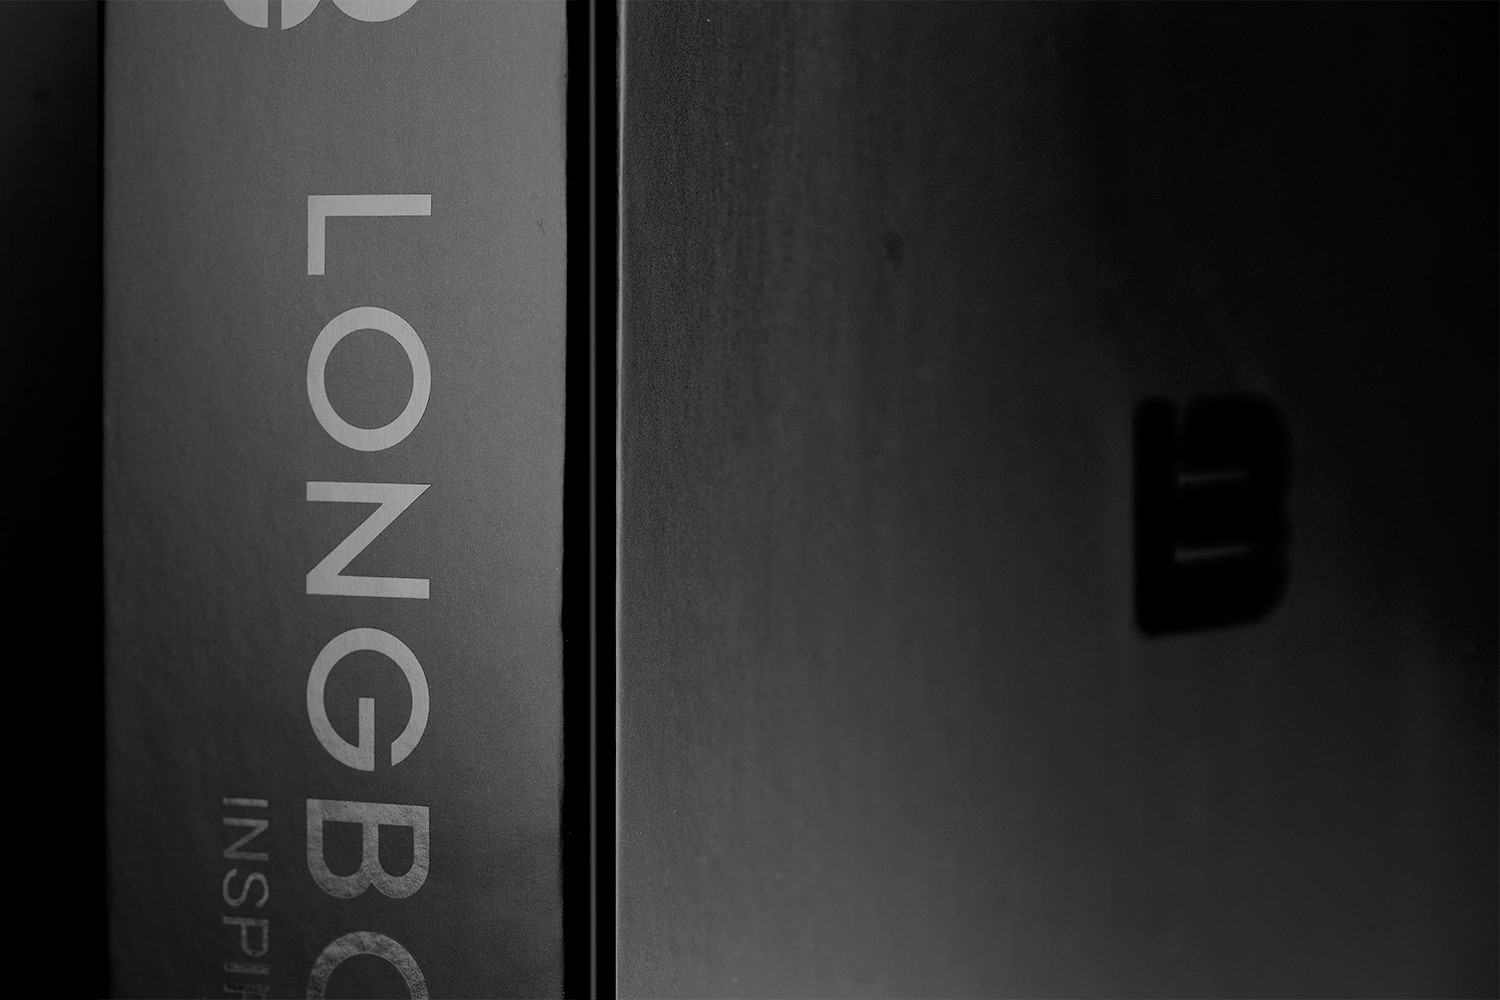 Longboard Black Box Standing Closed - Middle Detail